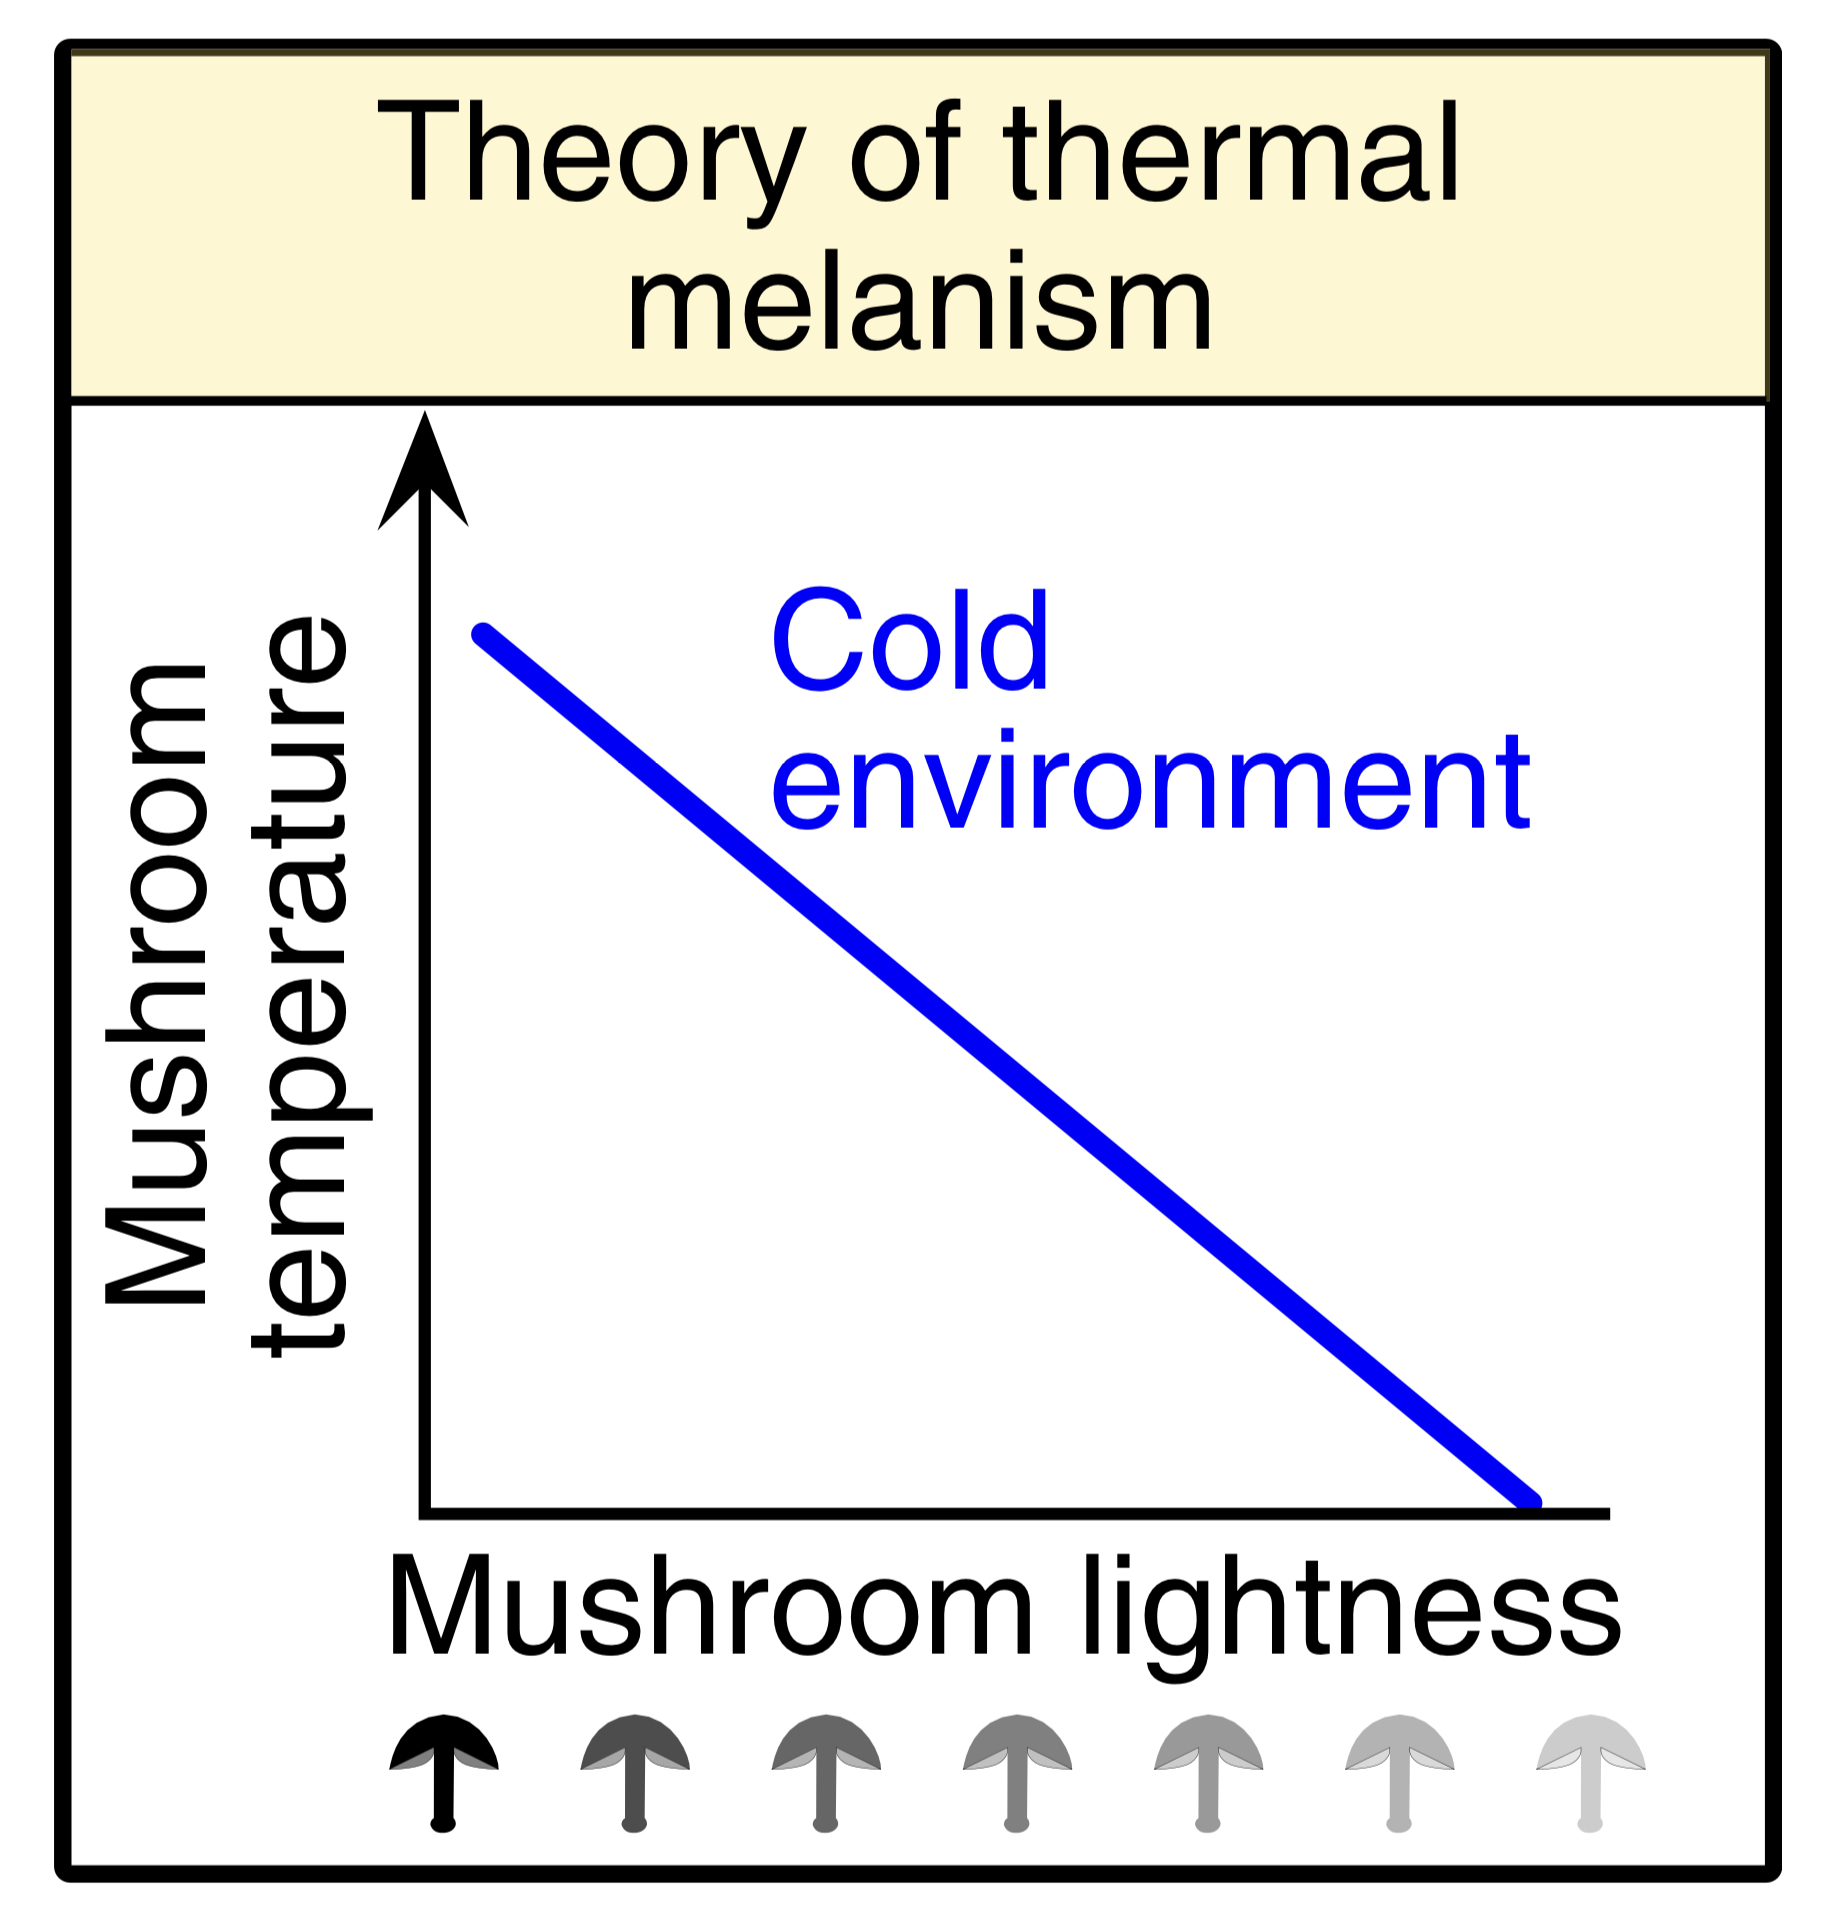 Thermal melanism theory. Dark colored mushrooms should dominate cold environments while light colored mushrooms dominate warm environments.  Krah et. al 2019 .